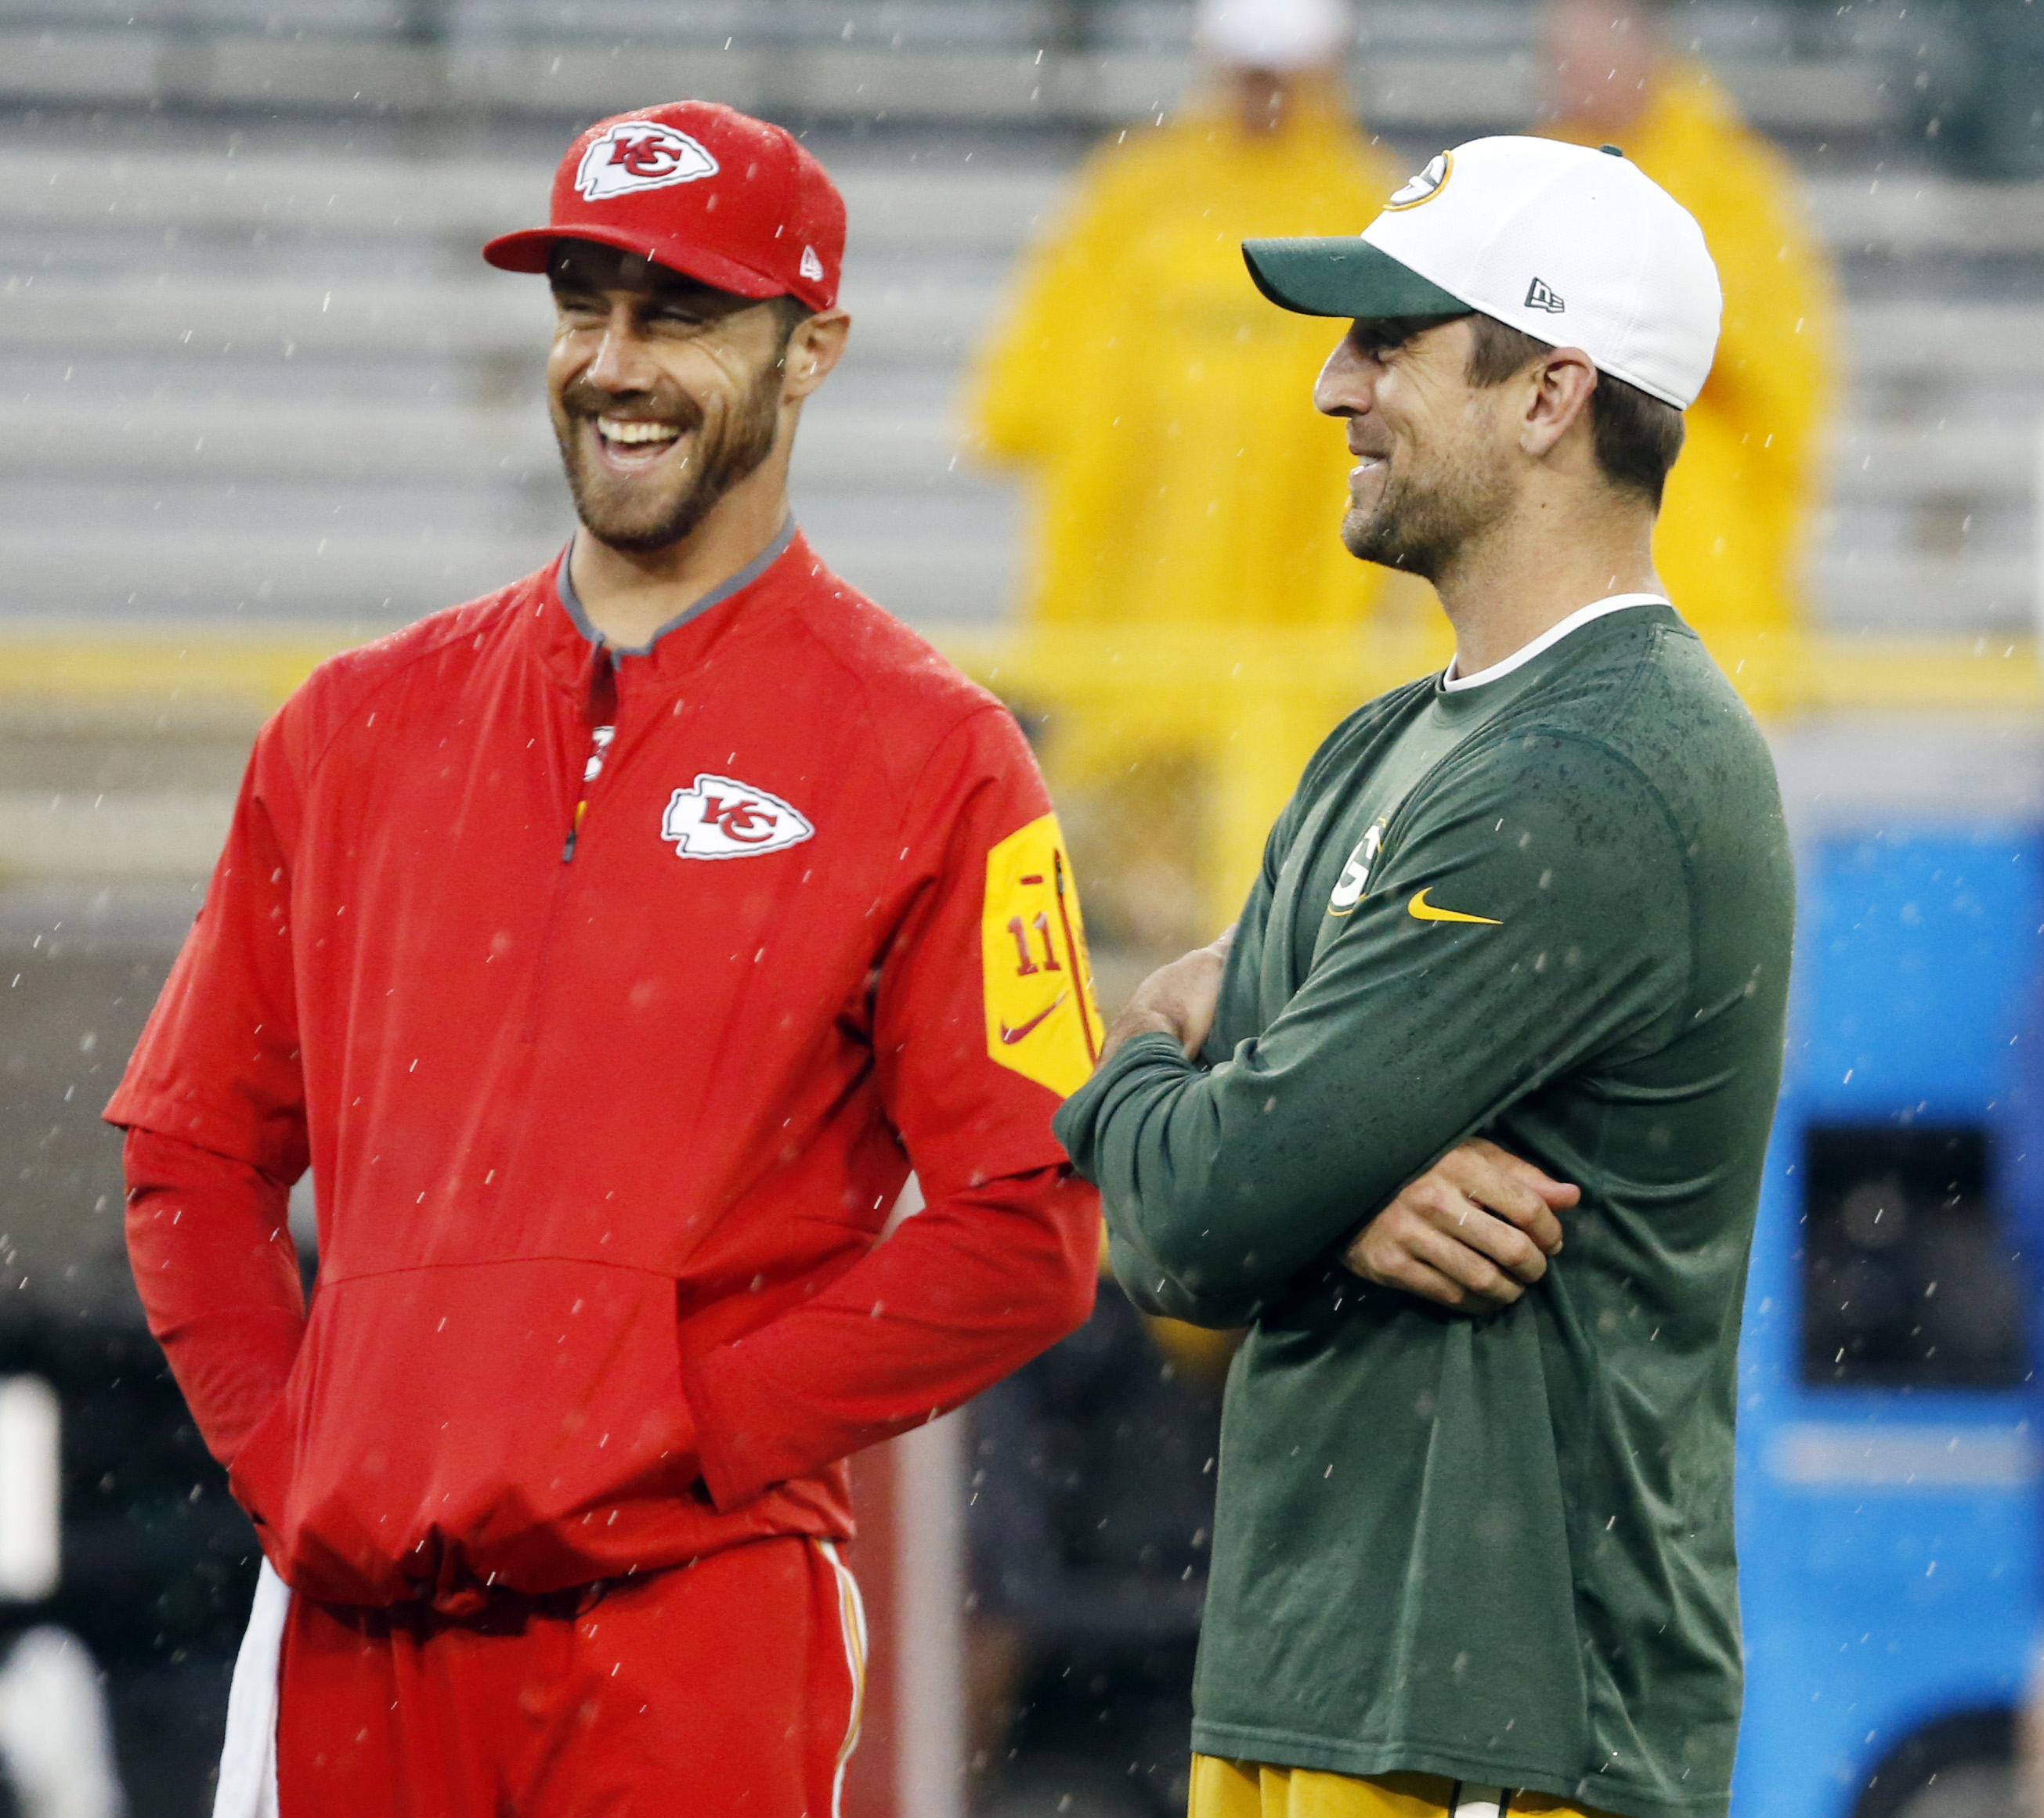 Green Bay Packers' Aaron Rodgers talks to Kansas City Chiefs' Alex Smith before an NFL football game Monday, Sept. 28, 2015, in Green Bay, Wis. (AP Photo/Mike Roemer)